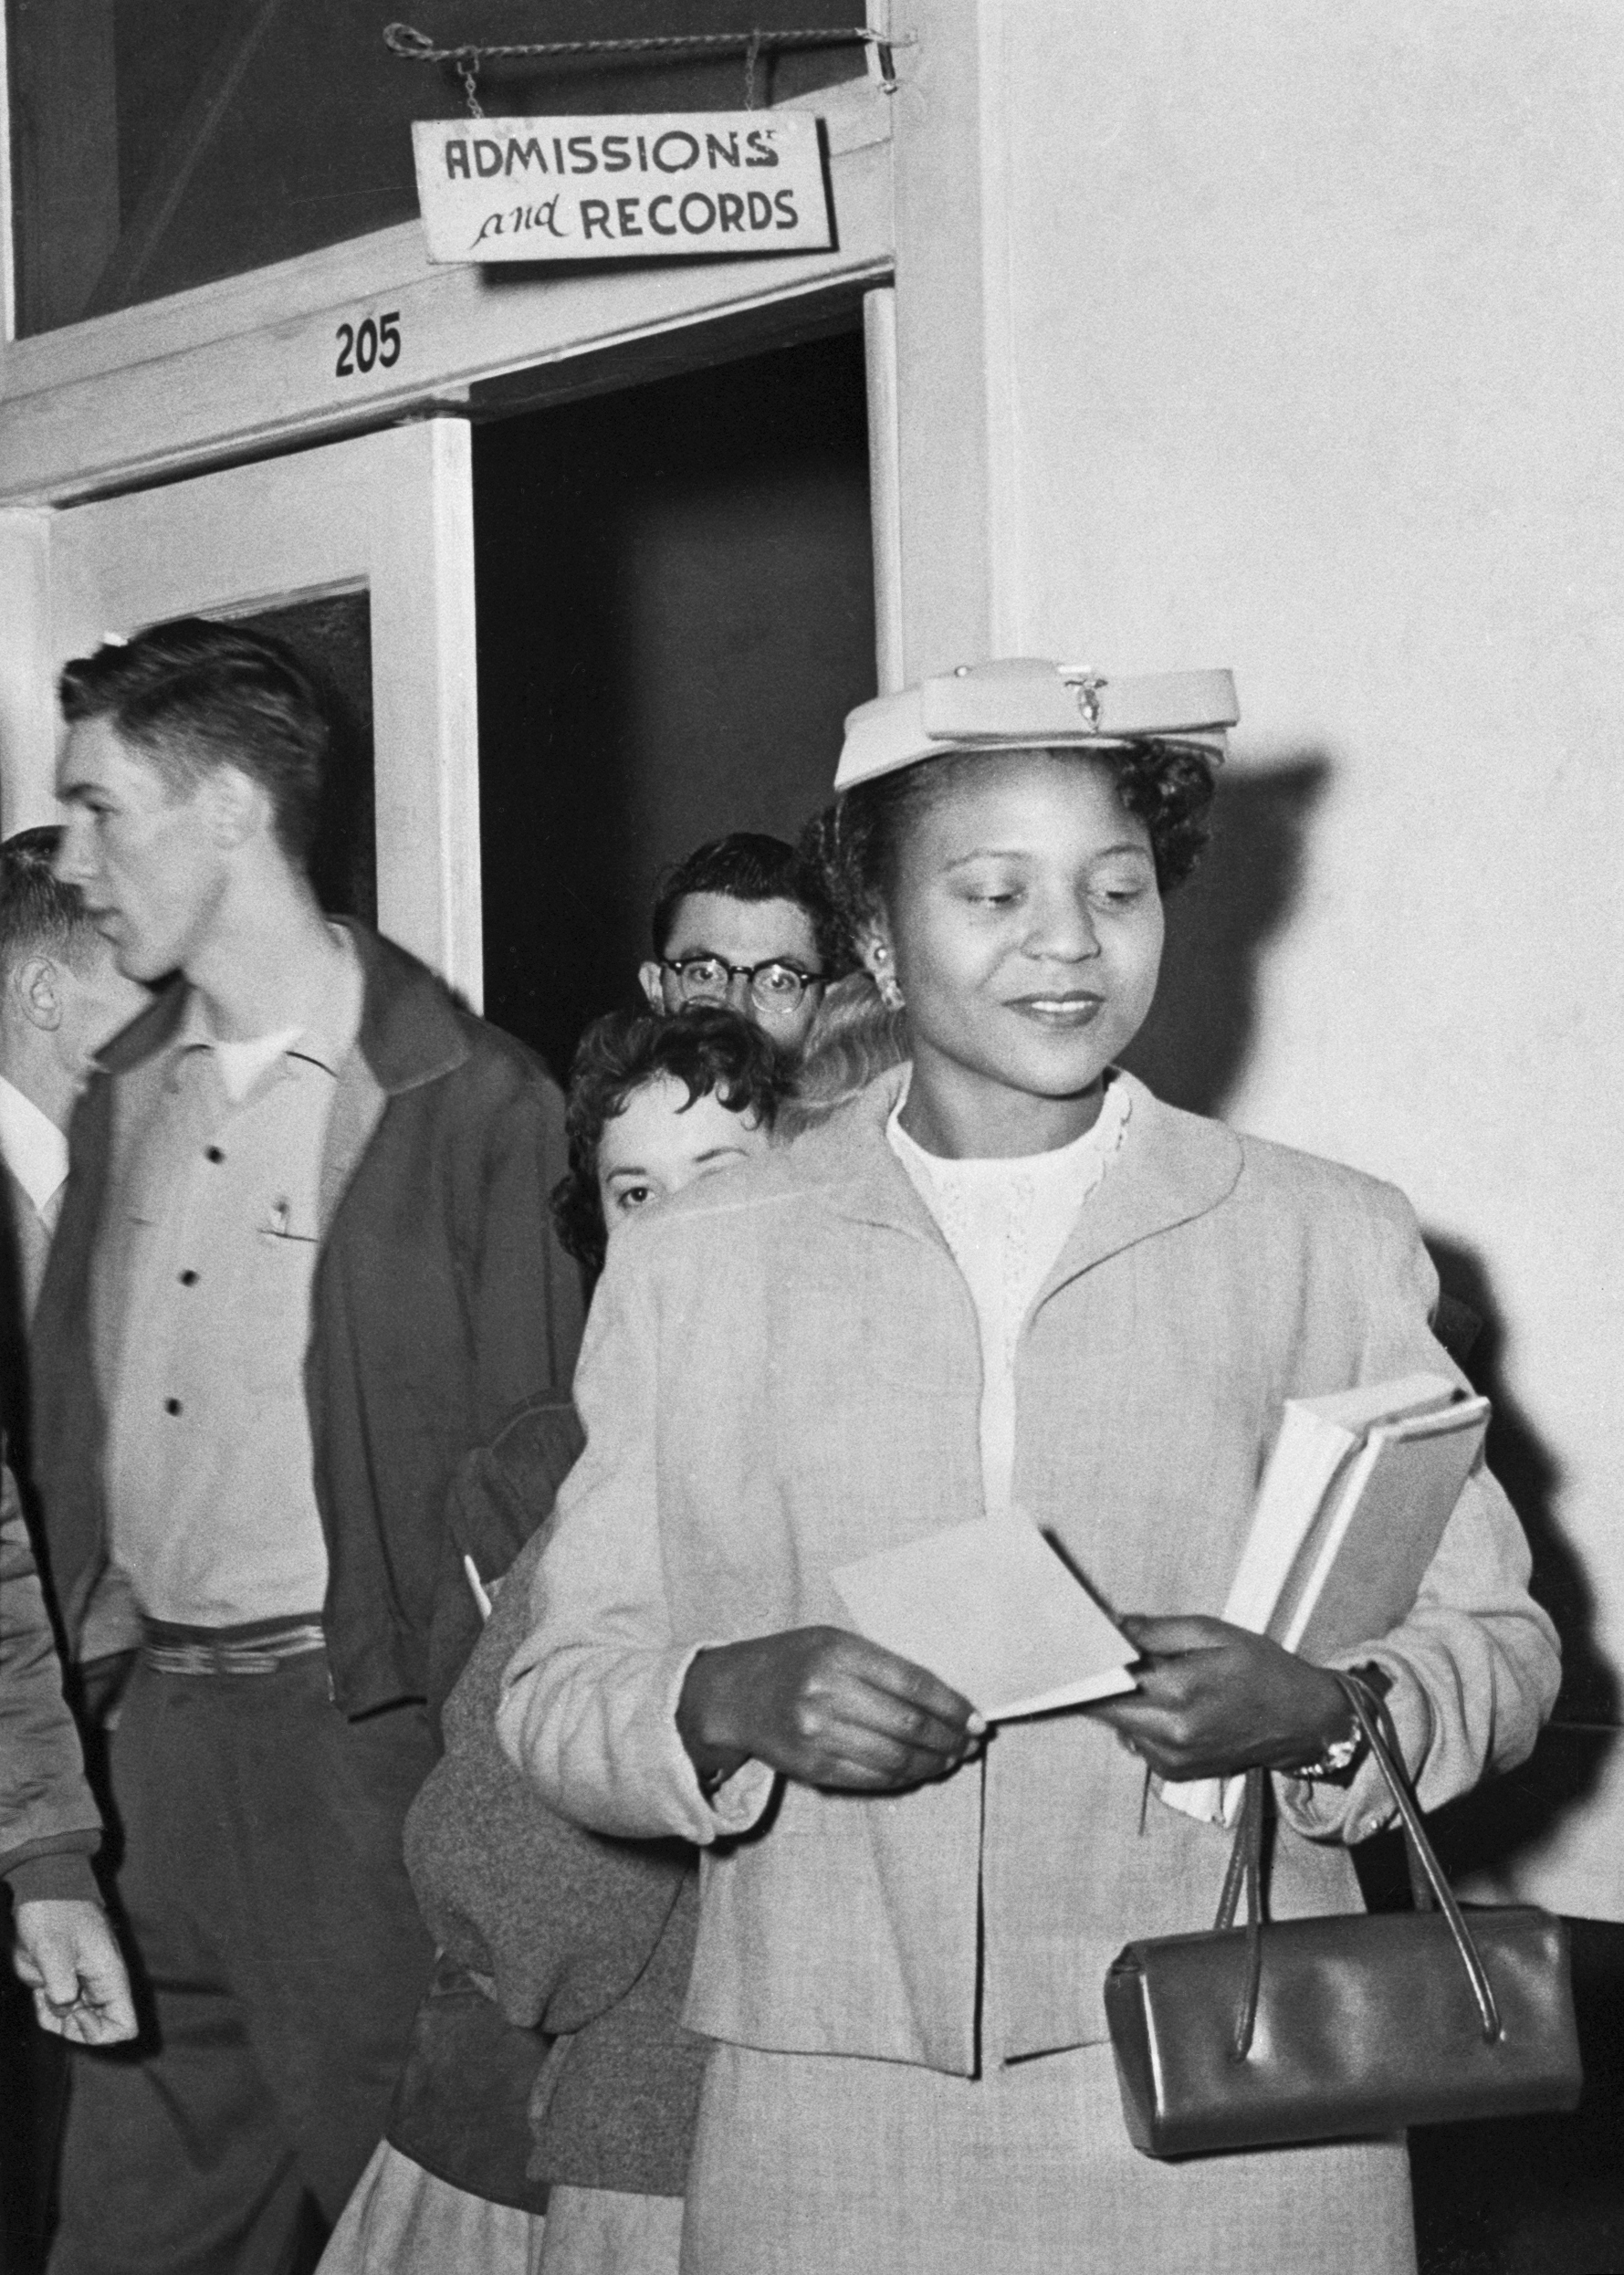 Autherine Lucy becomes the first African American student to enroll in the University of Alabama at Tuscaloosa in 136 years.